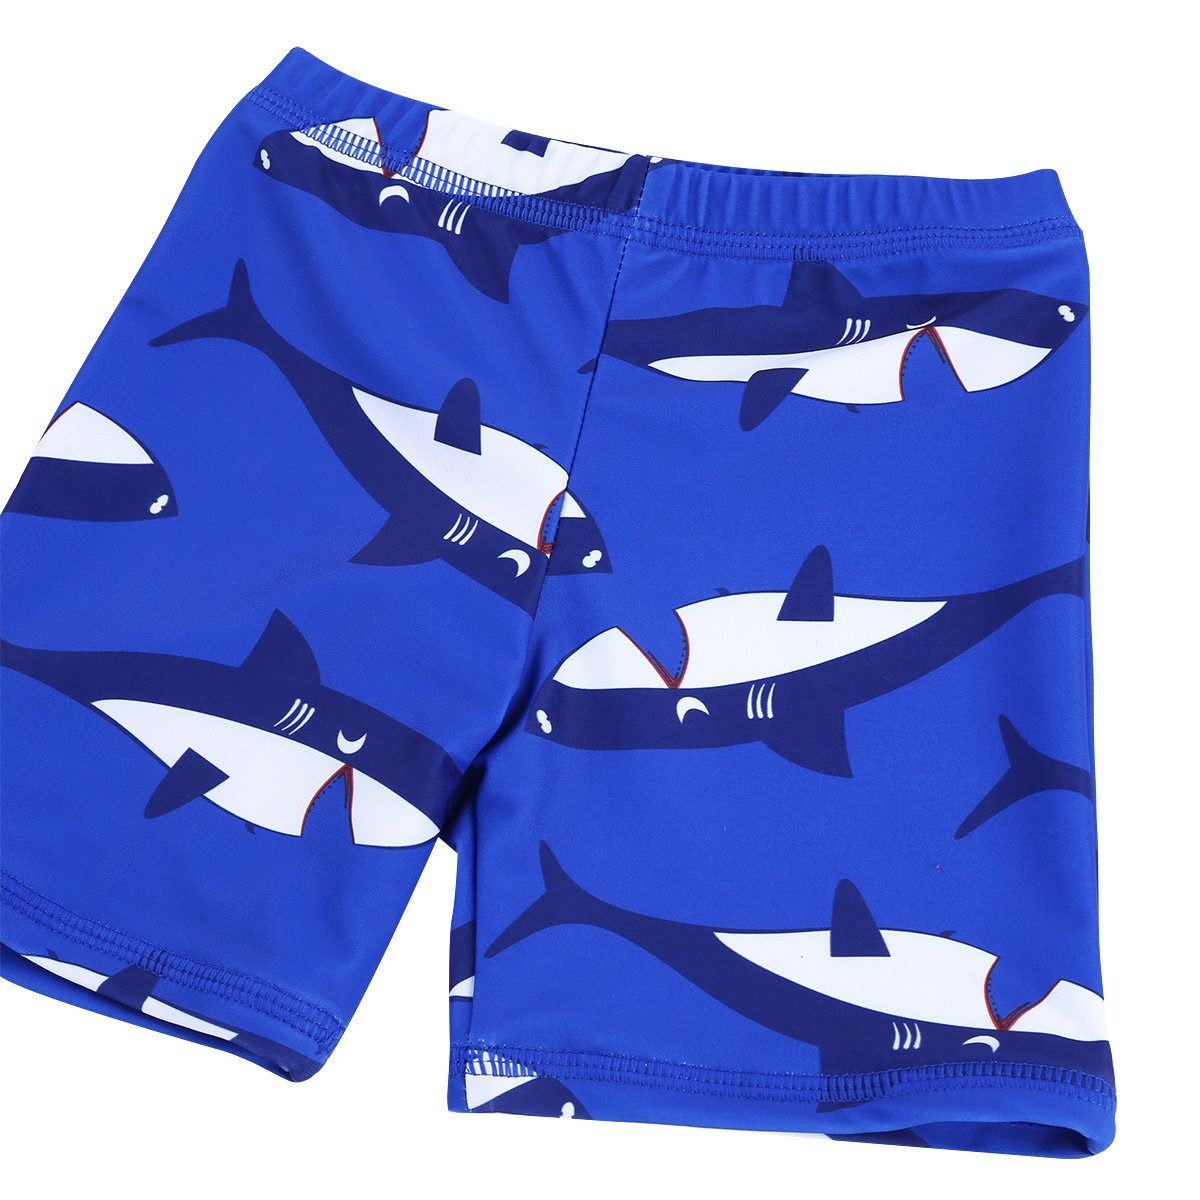 FEESHOW Kids Boys Shark Printed Rash Guard Swimsuit Bathing Suit Long Sleeve Top Shirt with Trunks Swimwear Swimming Cap Set